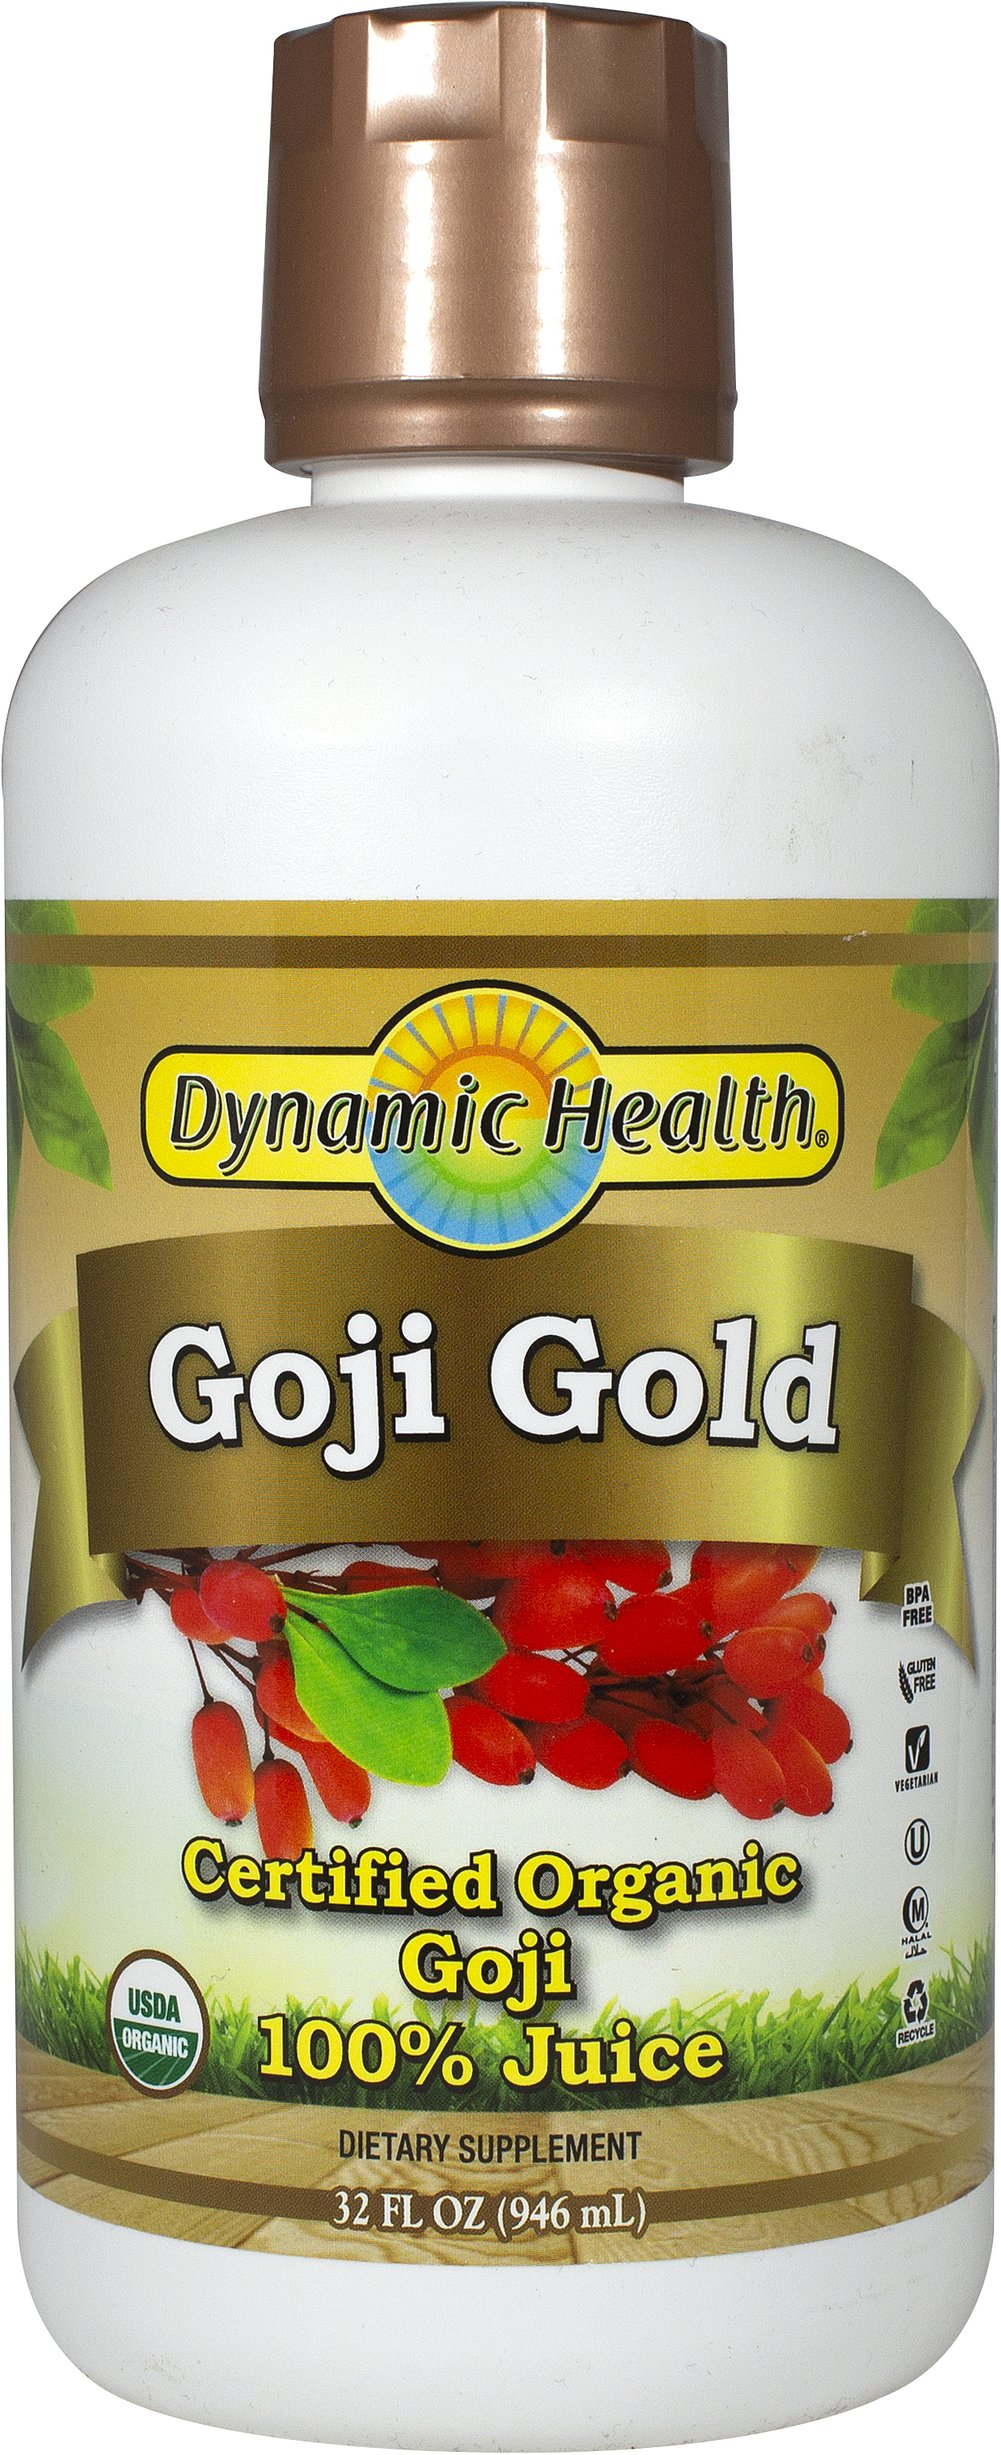 Organic Goji Gold 100% Pure Juice  32 oz Liquid  $23.99